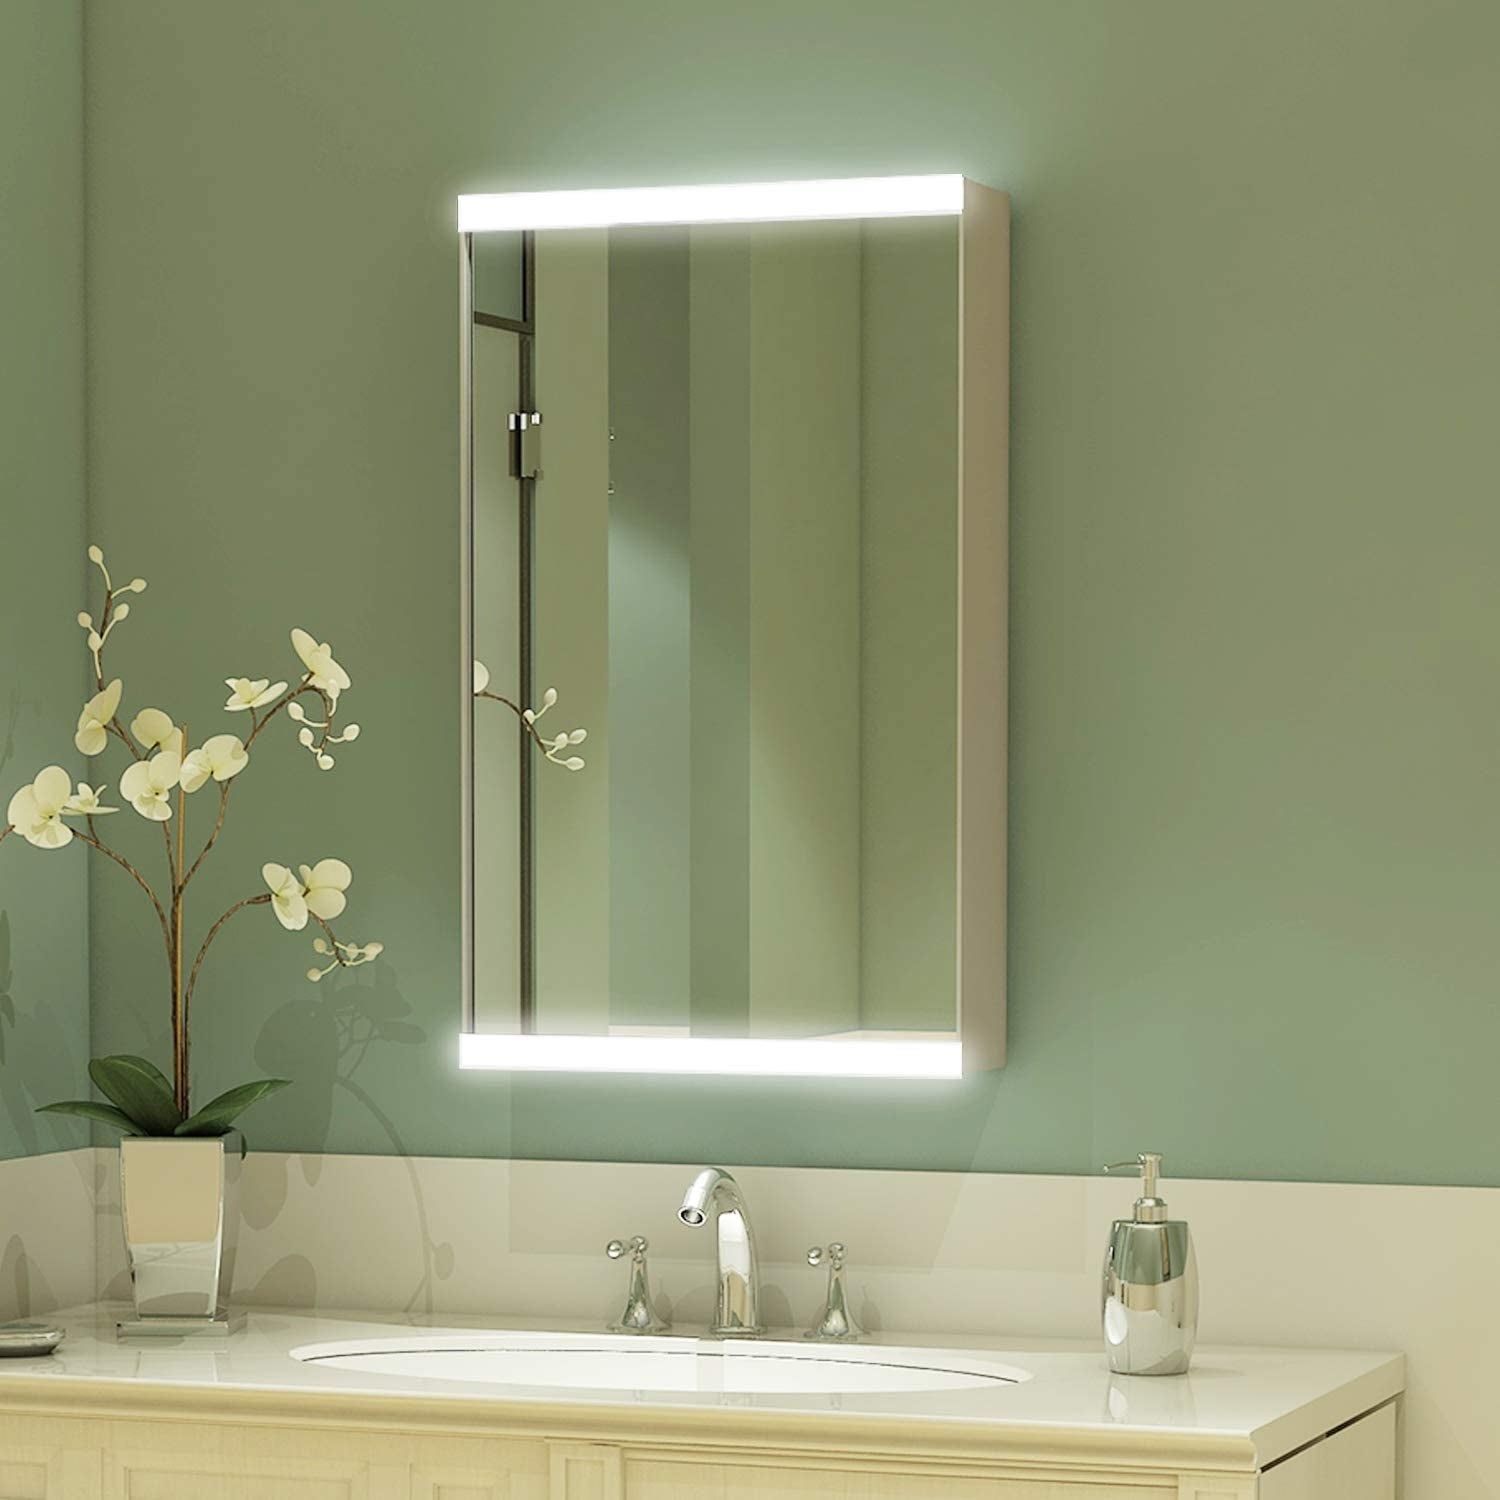 15 X 26 Led Bathroom Medicine Cabinet With Mirror Intelligent Switch Aluminum Frame Casement Door Surface Mounting Only Overstock 31814289